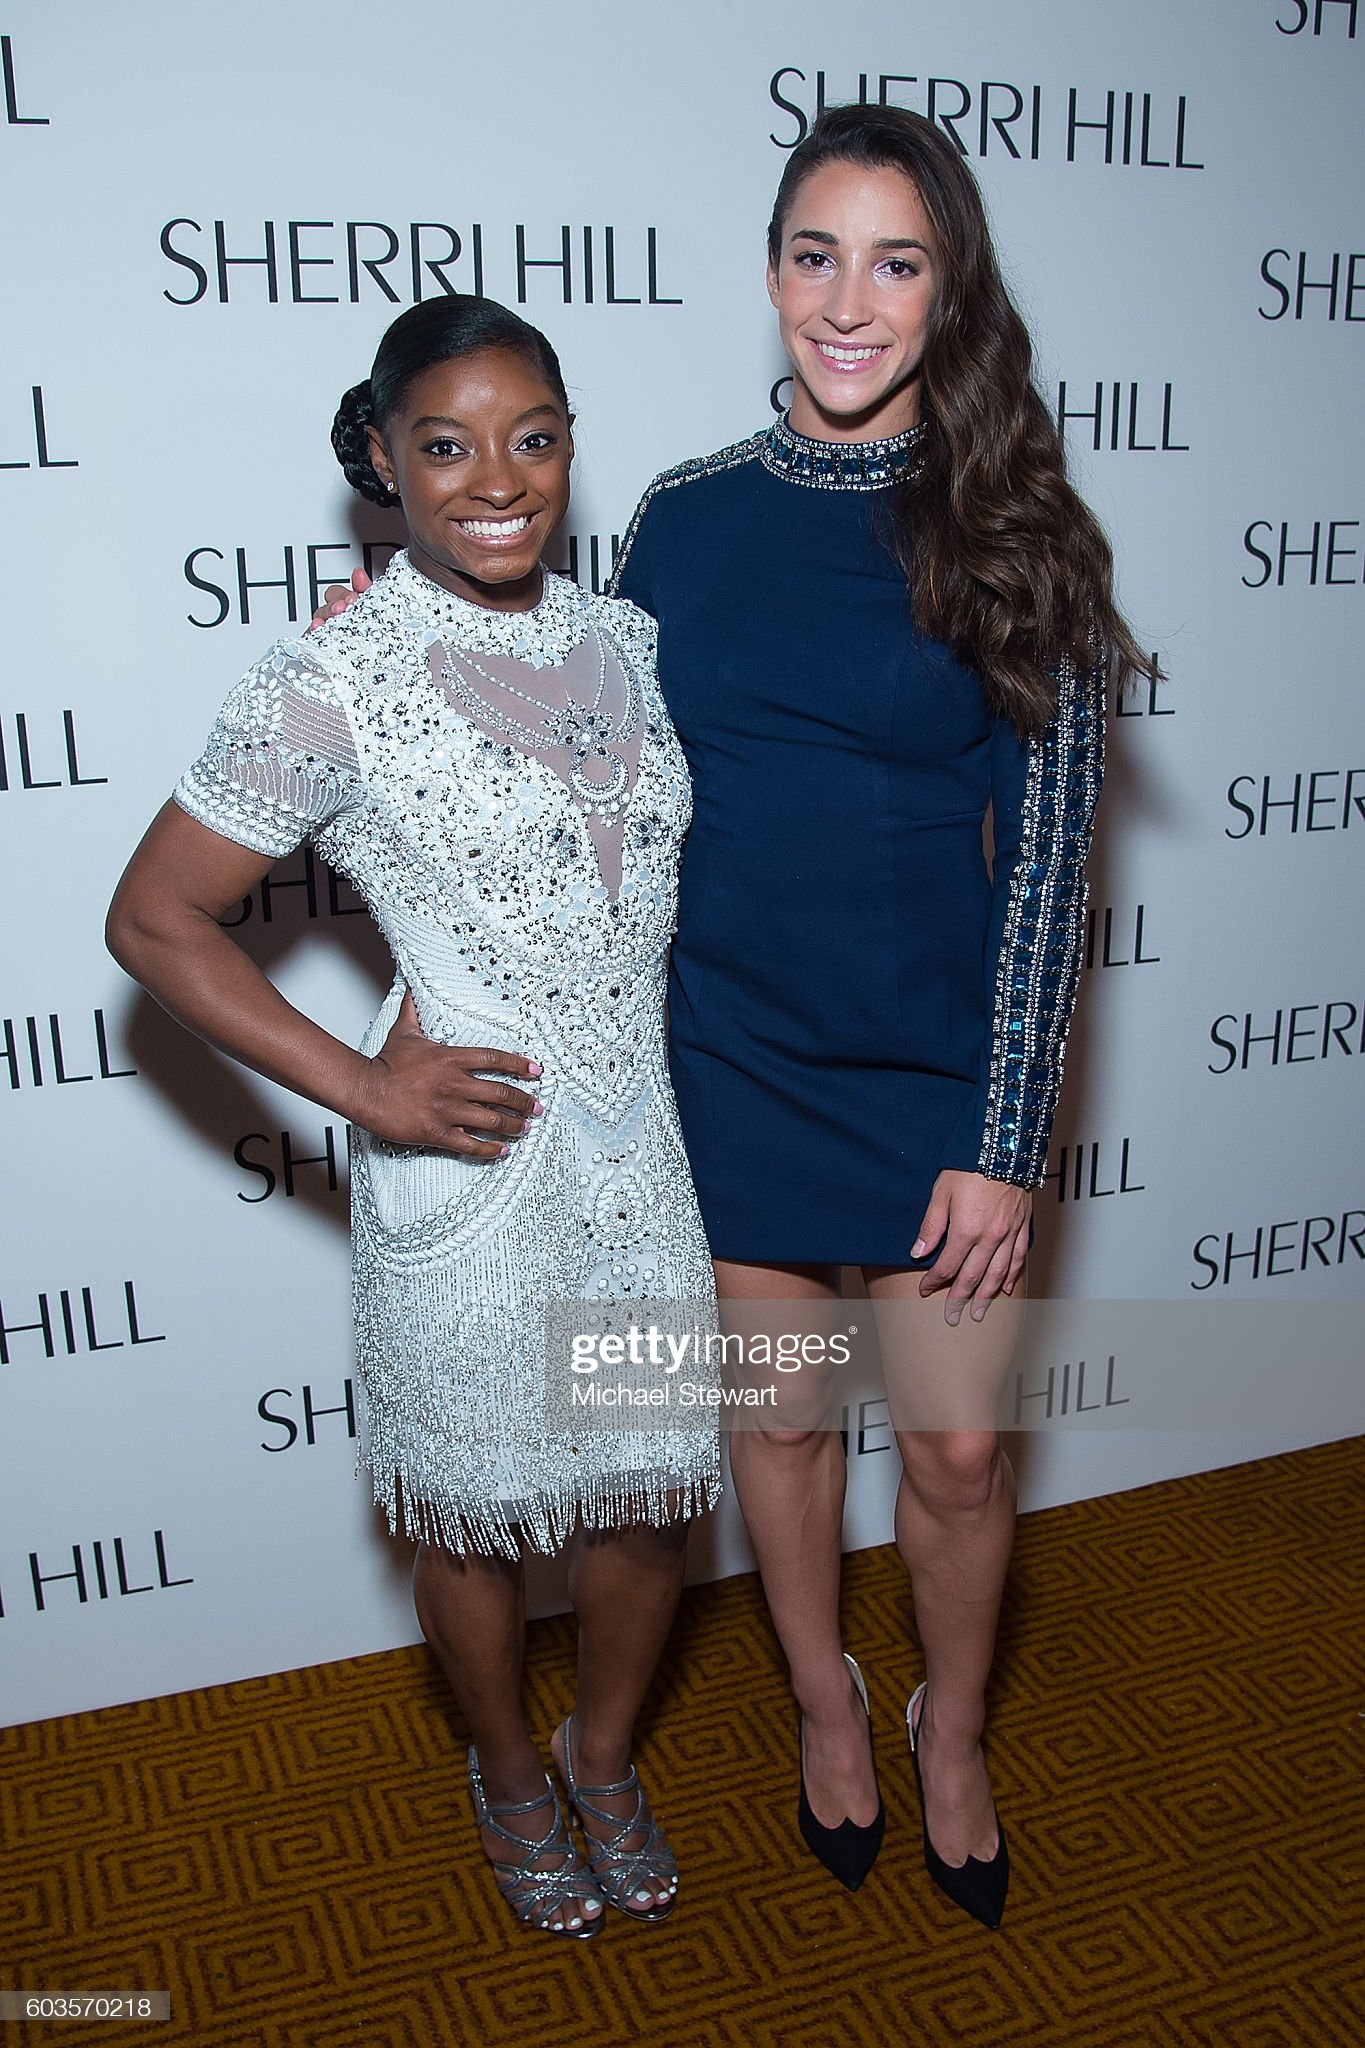 ¿Cuánto mide Aly Raisman? - Real height Simone-biles-and-aly-raisman-attend-the-sherri-hill-fashion-show-picture-id603570218?s=2048x2048